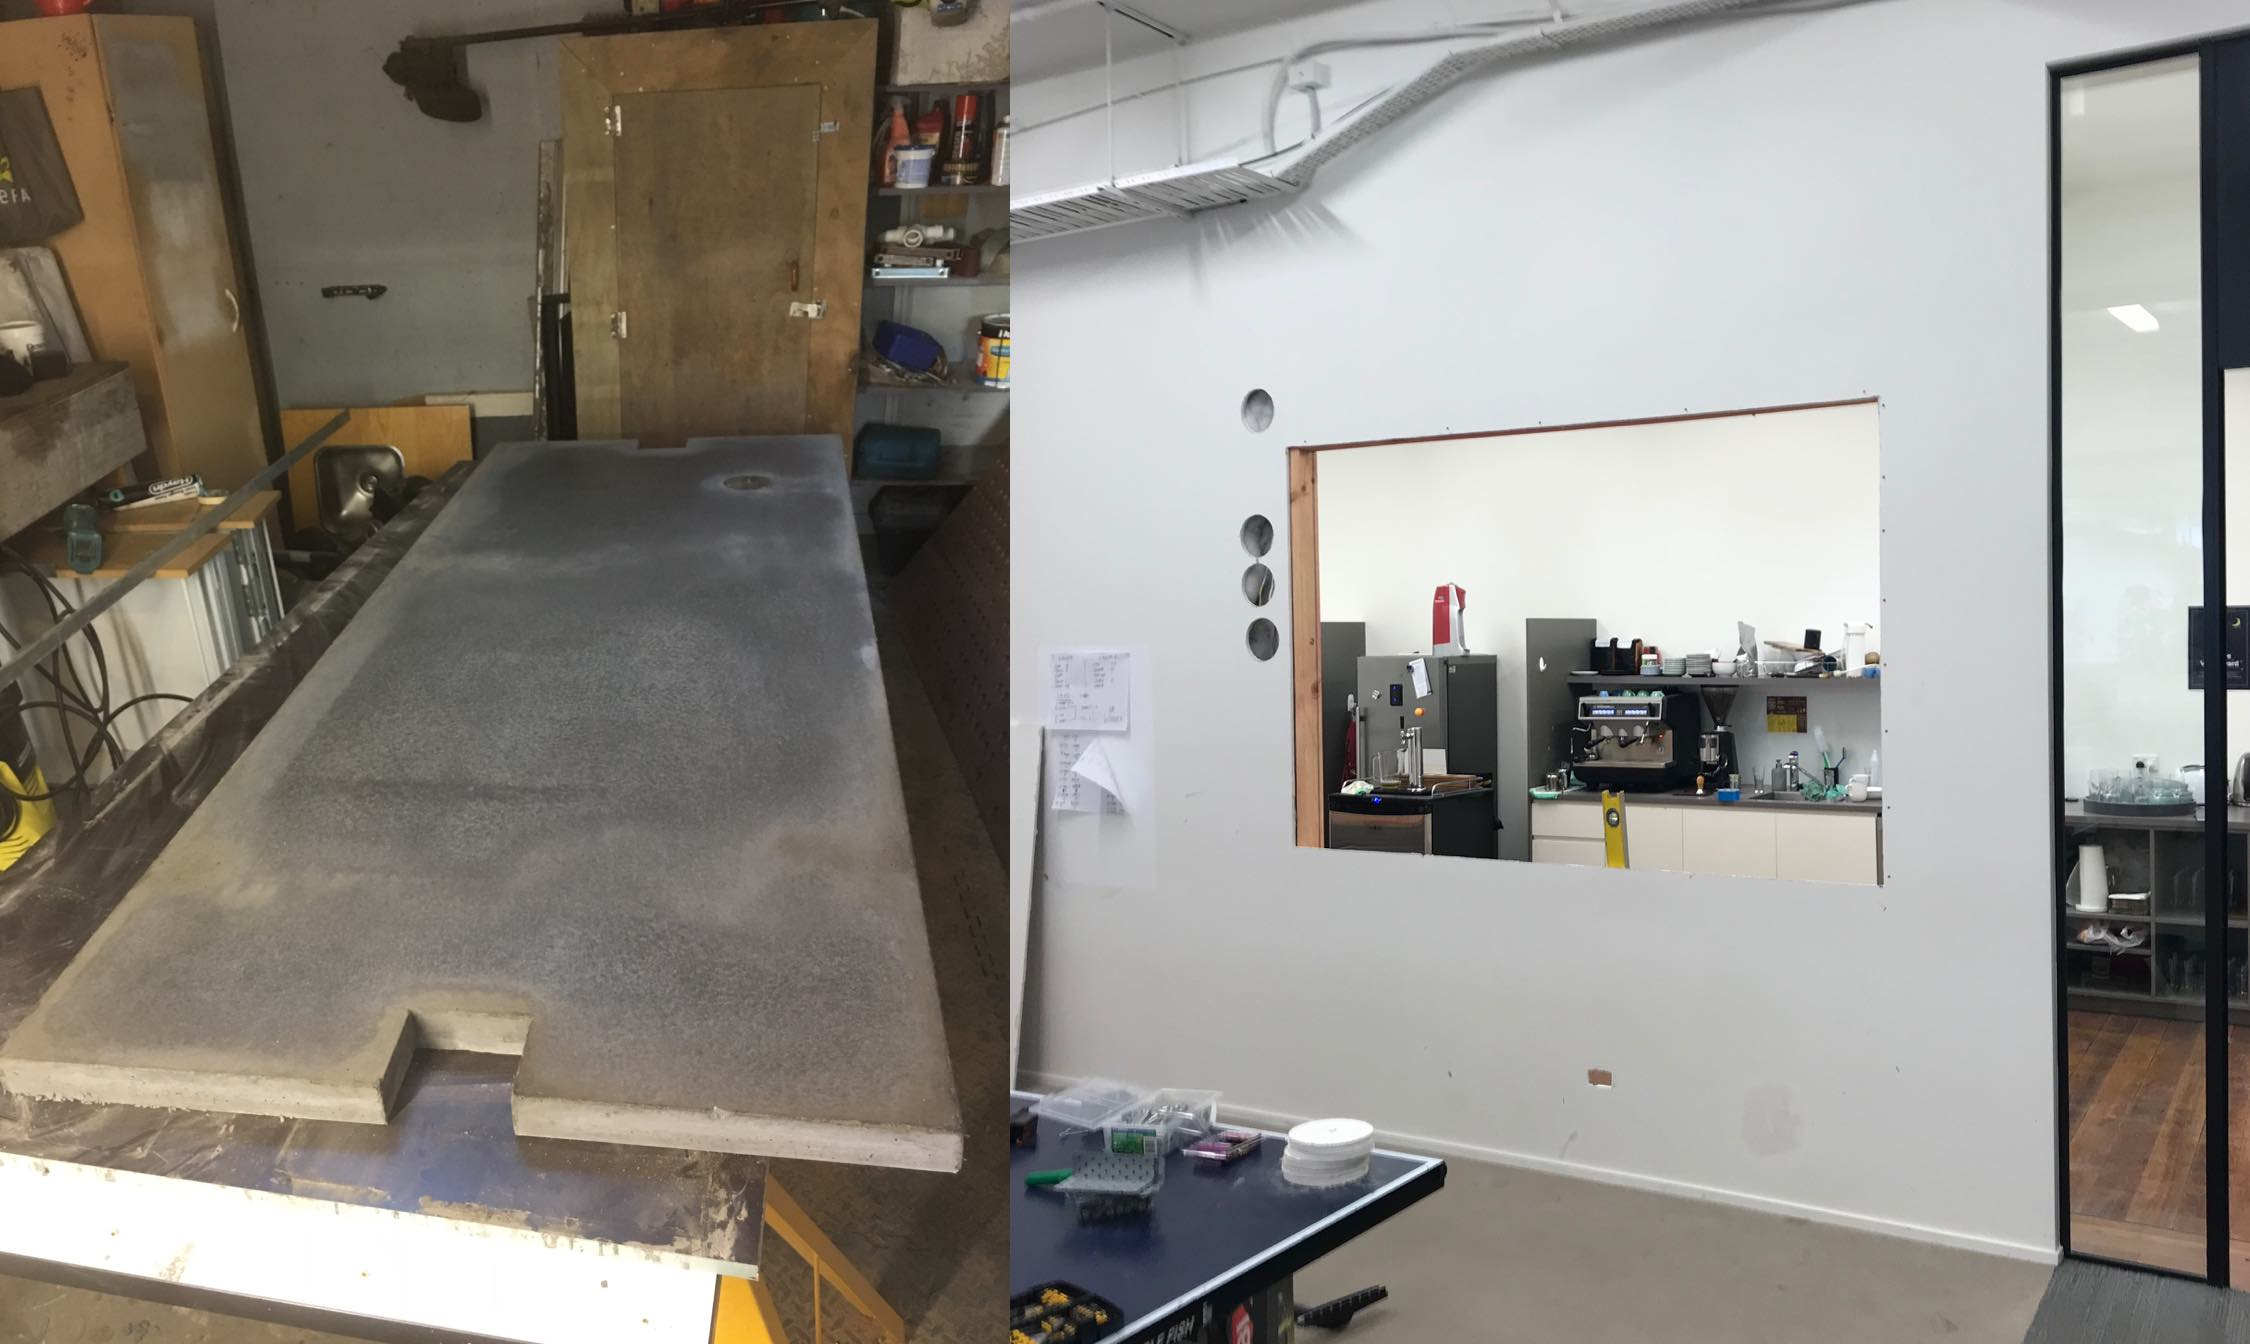 On the left:  you see our concrete slab getting polished.  On the right:  a large hole.